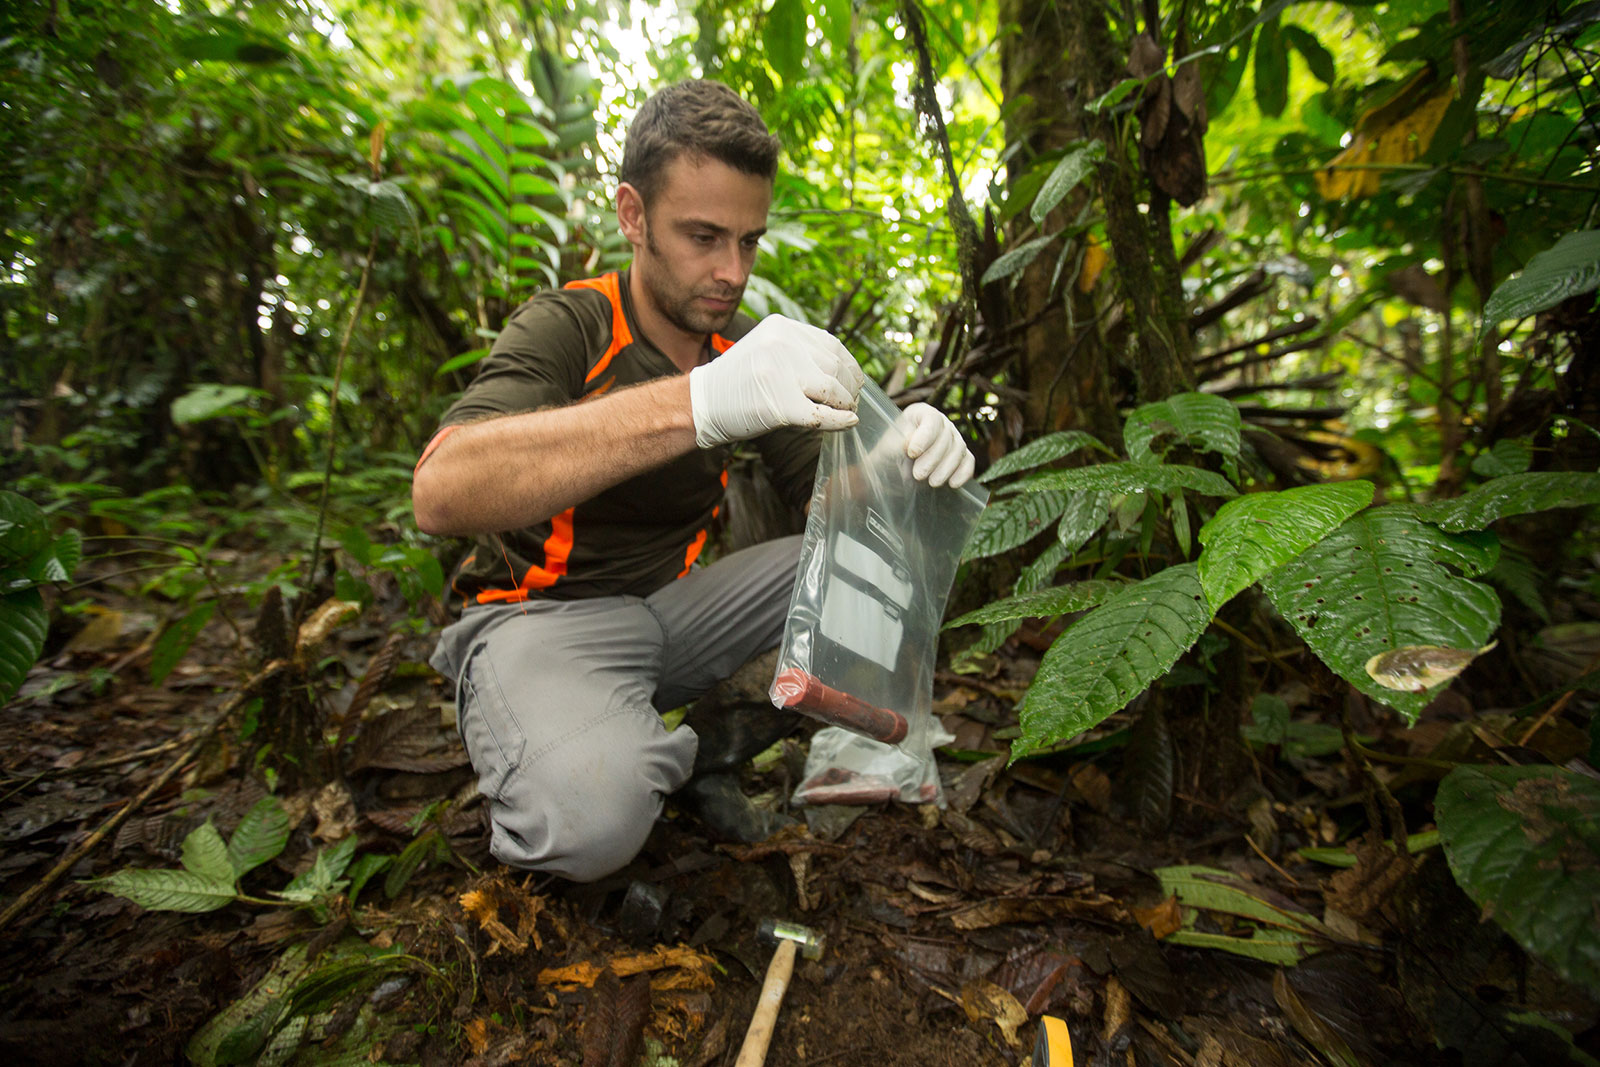 A researcher collects a sample from the forest and places it into a ziplock bag